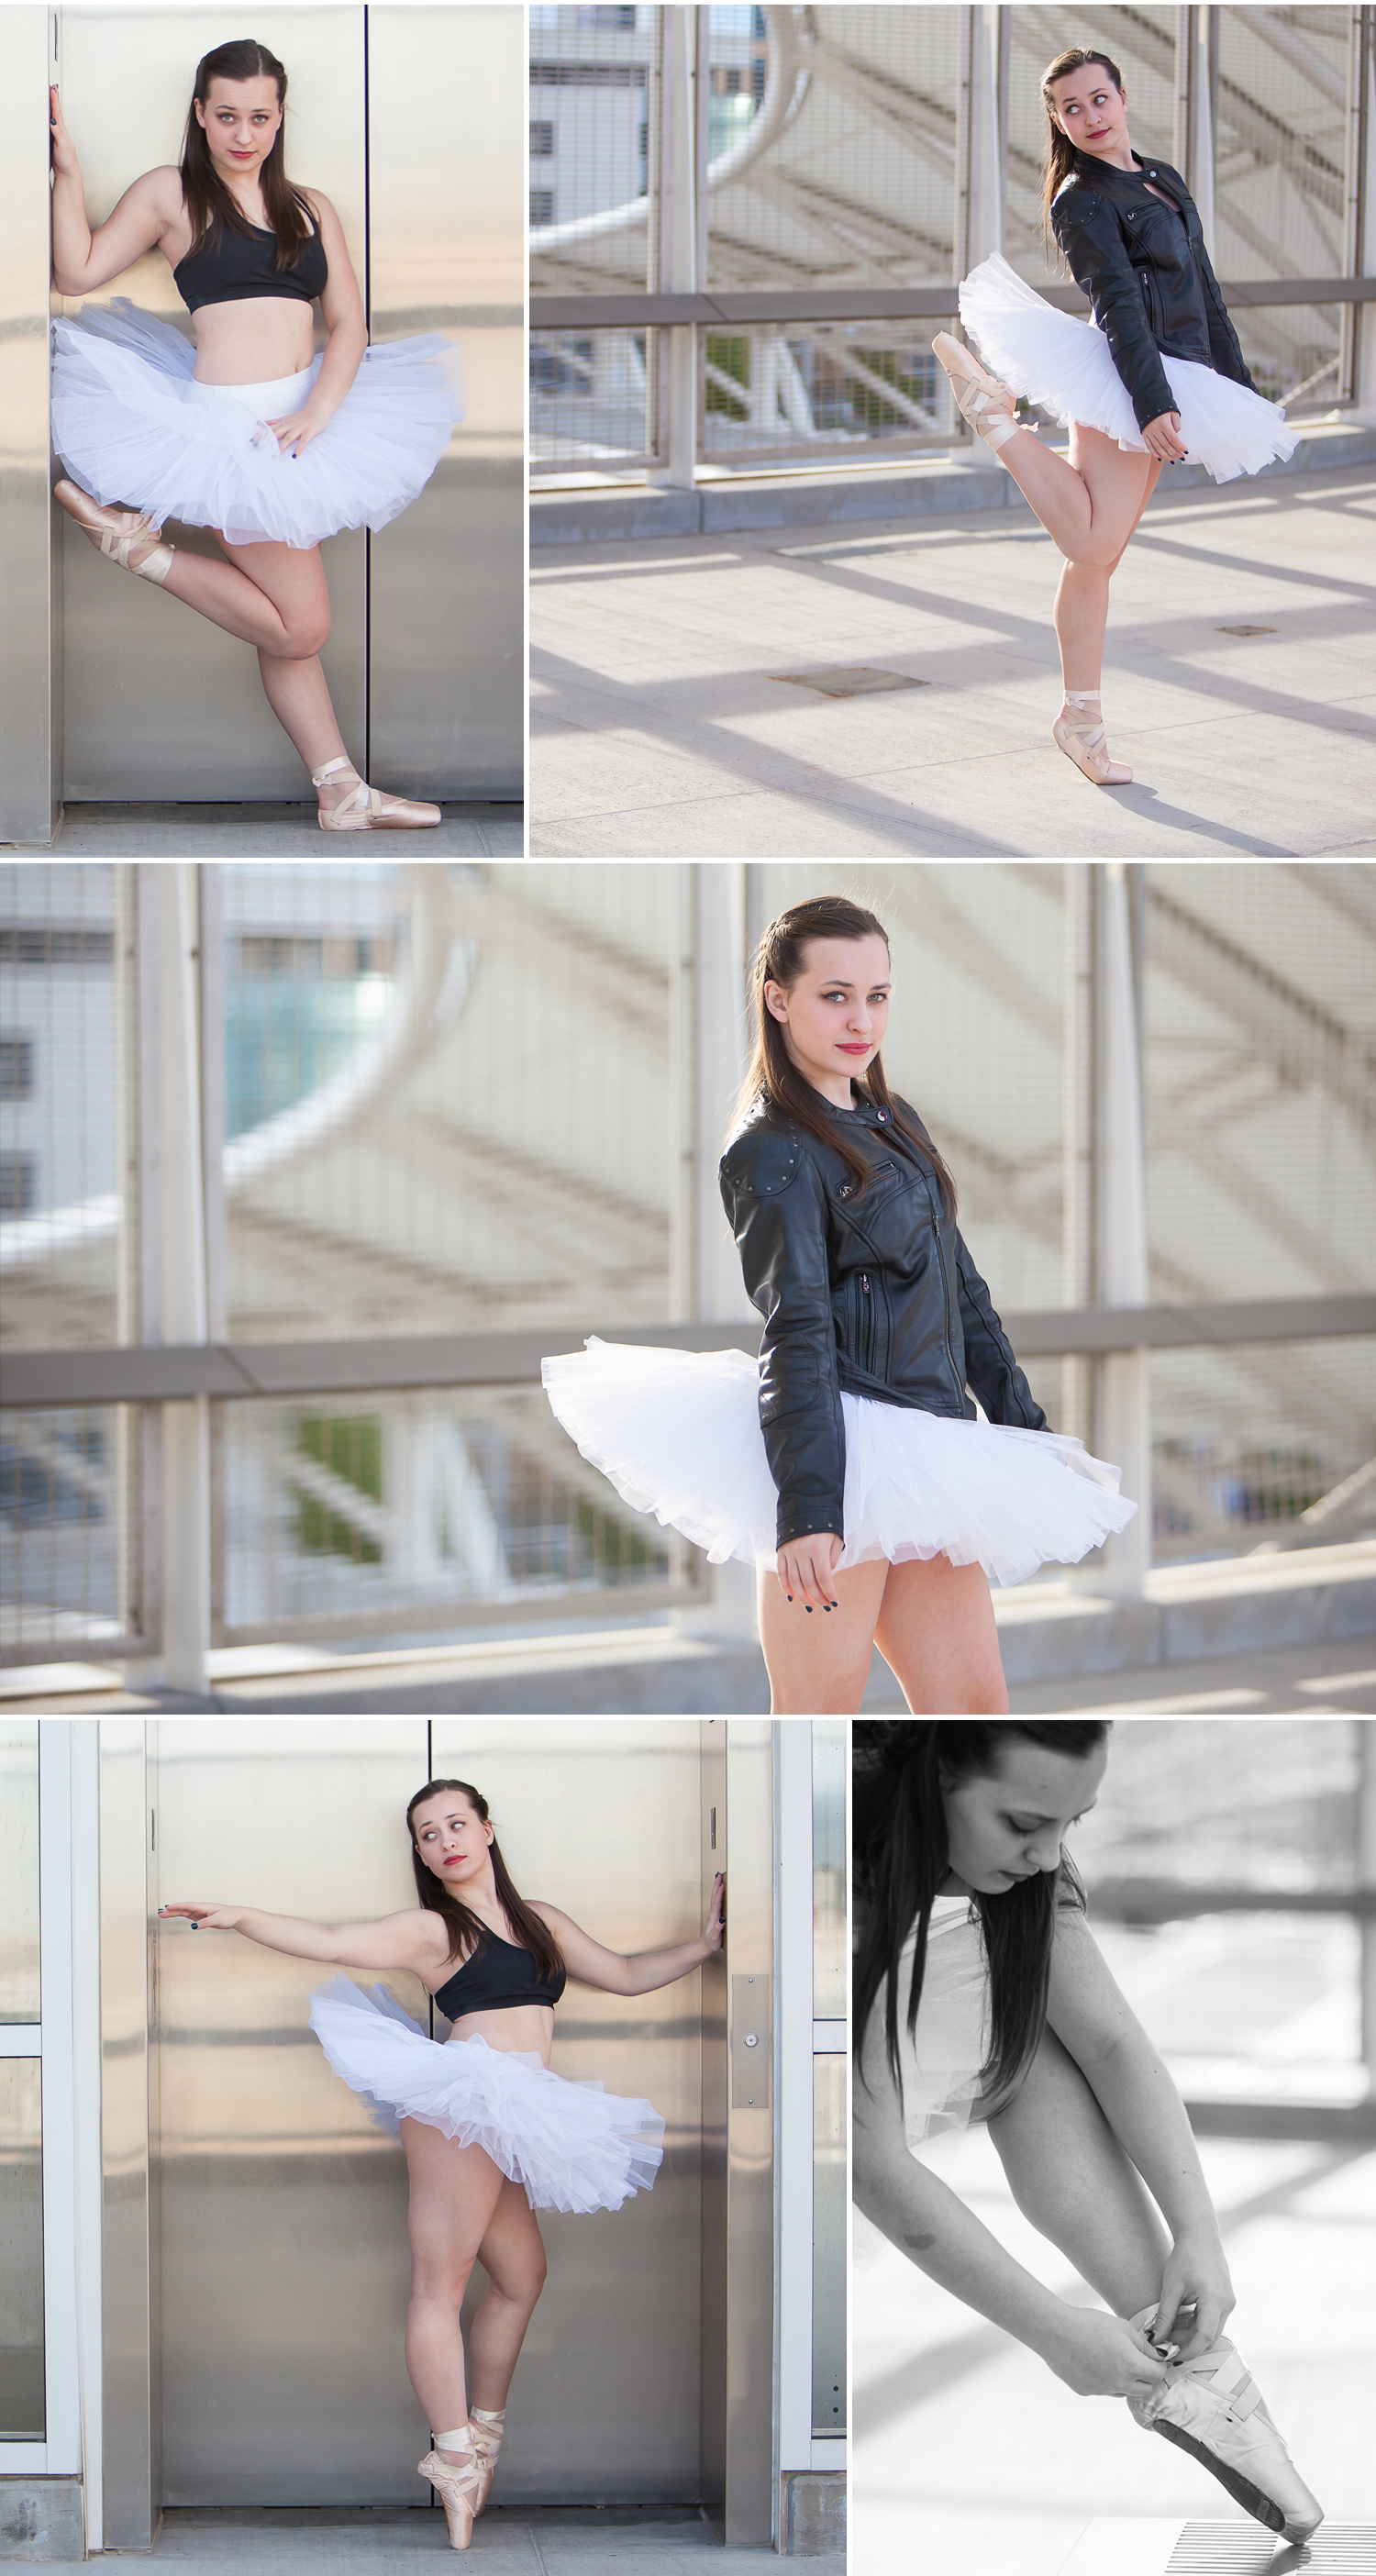 Urban dancer portraits with leather jacket and tutu in downtown Denver with photographer Jennifer Koskinen, Merritt Portrait Studio